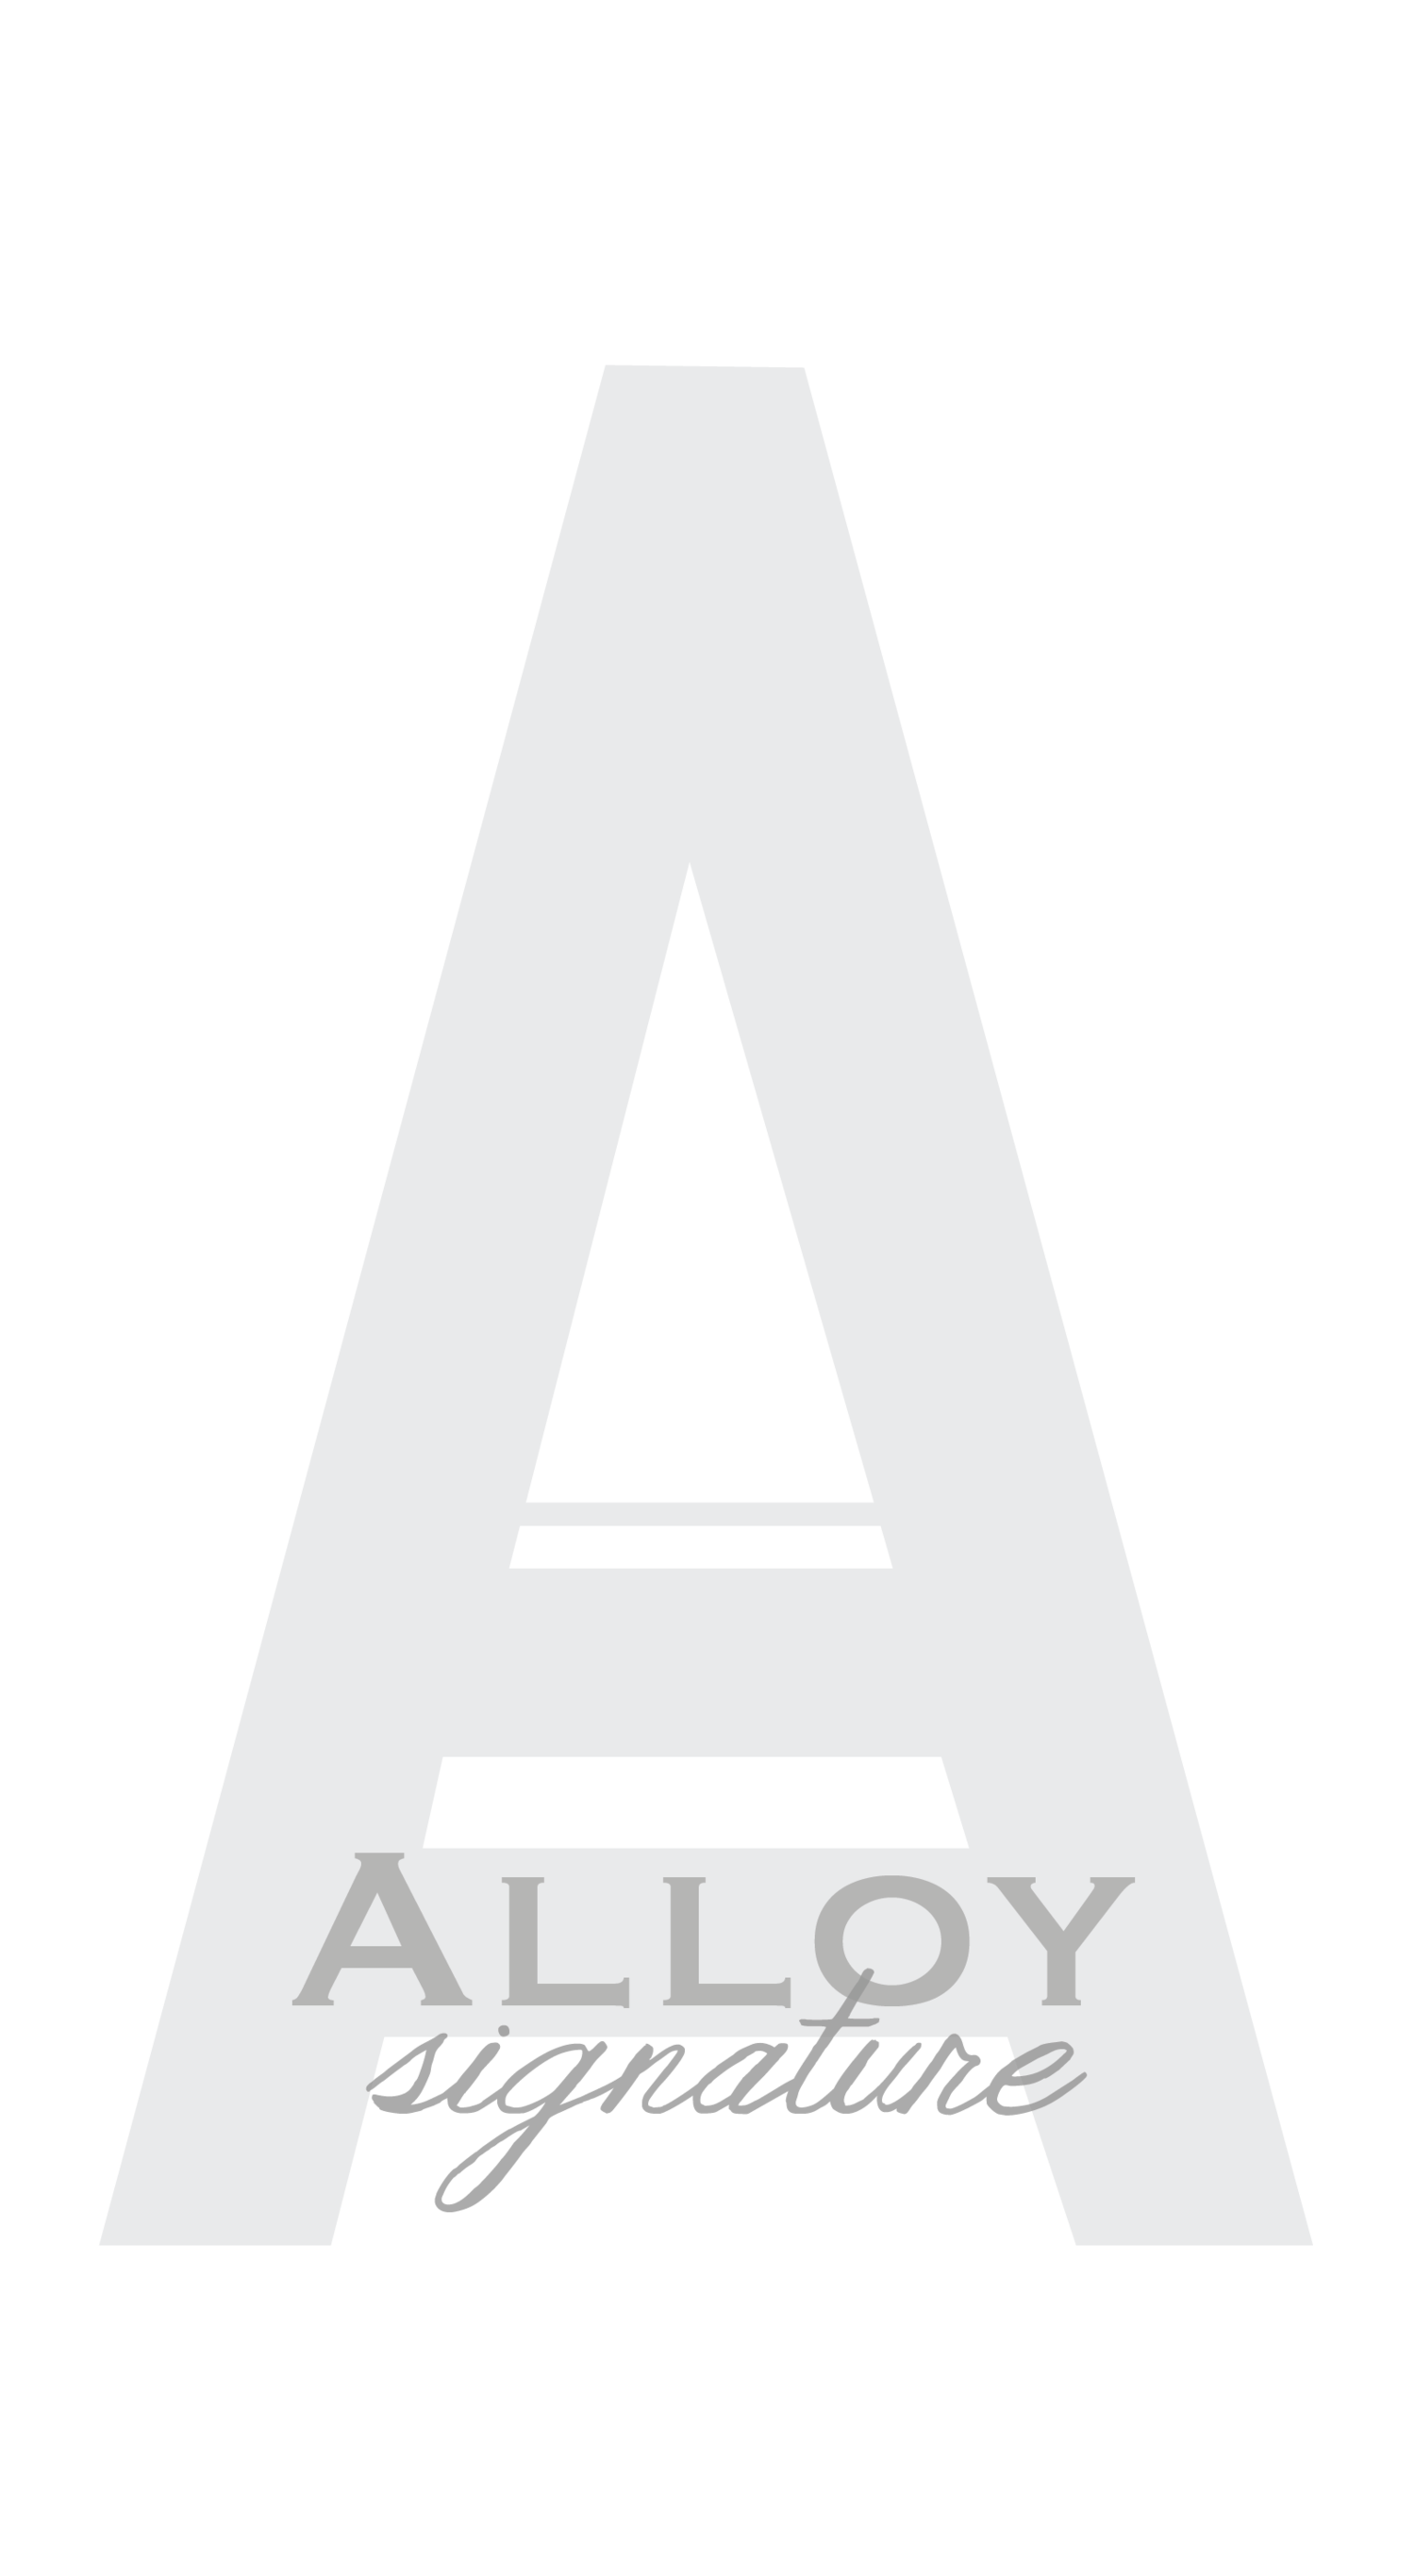 Alloy Signature